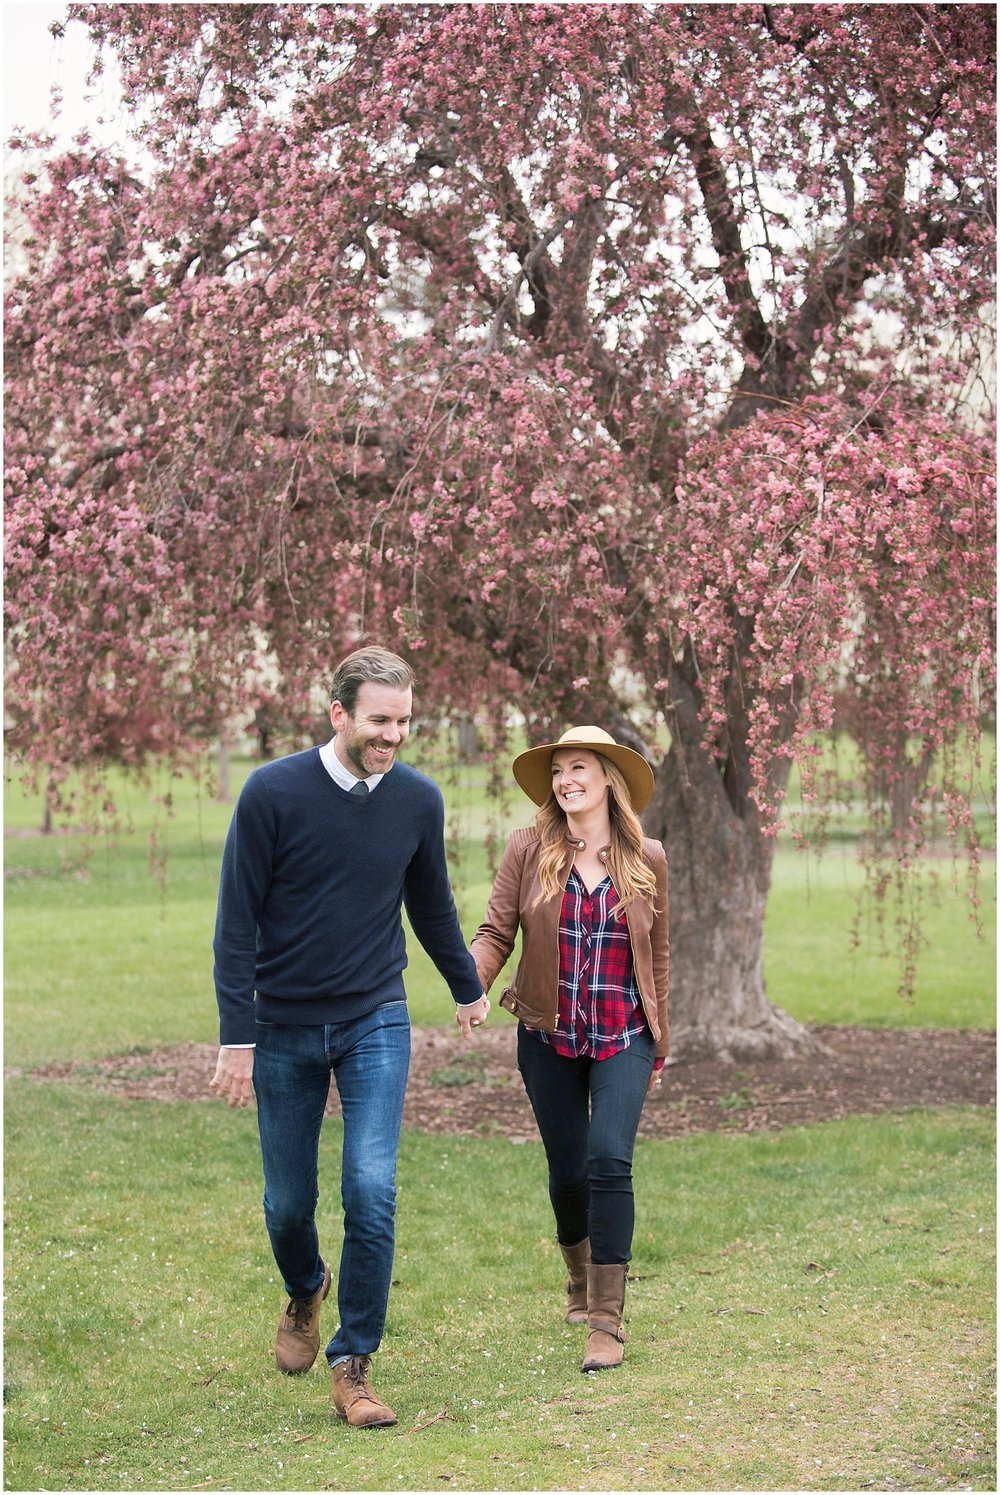 Fun Cherry Blossom Engagement Photos